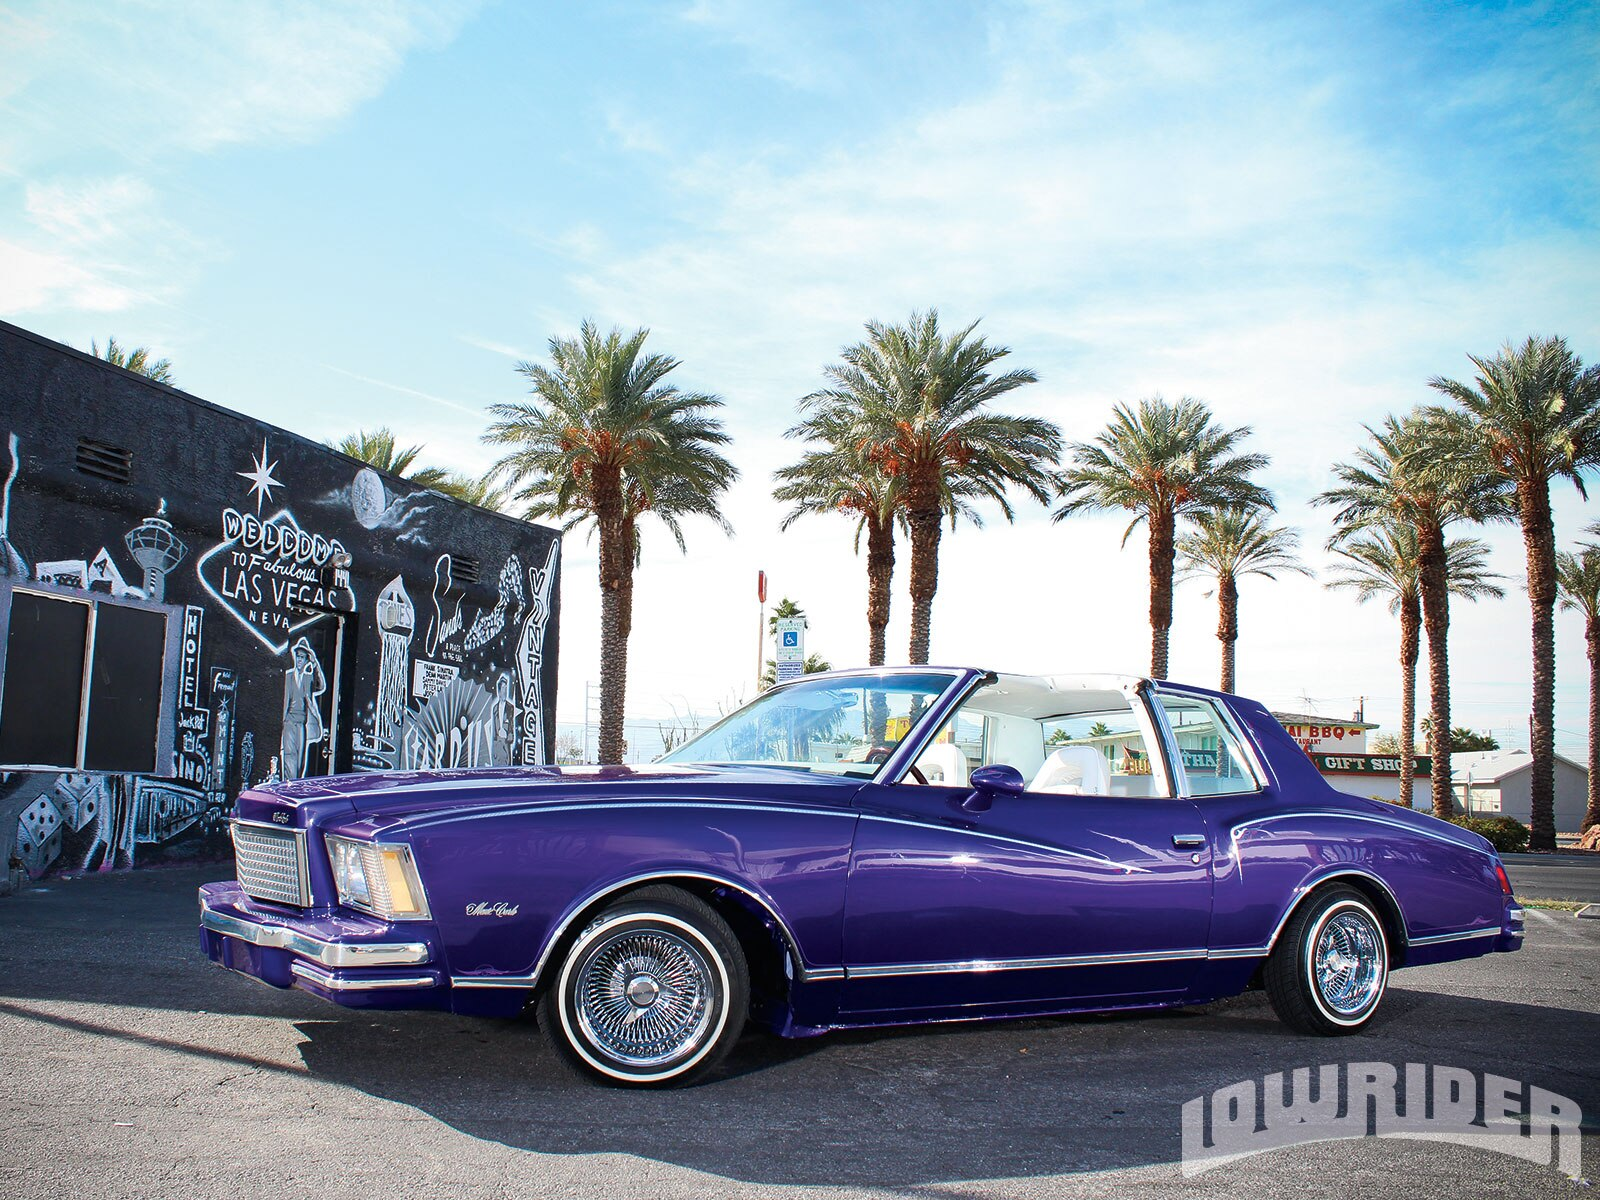 429390145692843051 besides This 75 Impala Glasshouse Is Bringing Back The 70s Flavor besides Watch also Lowrider Hydraulic Kit 3 Pump Adex Impala Cutlass Monte Carlo 5149466 2 also 1973 CHEVROLET CAPRICE CLASSIC CUSTOM CONVERTIBLE 157558. on chevy impala on daytons